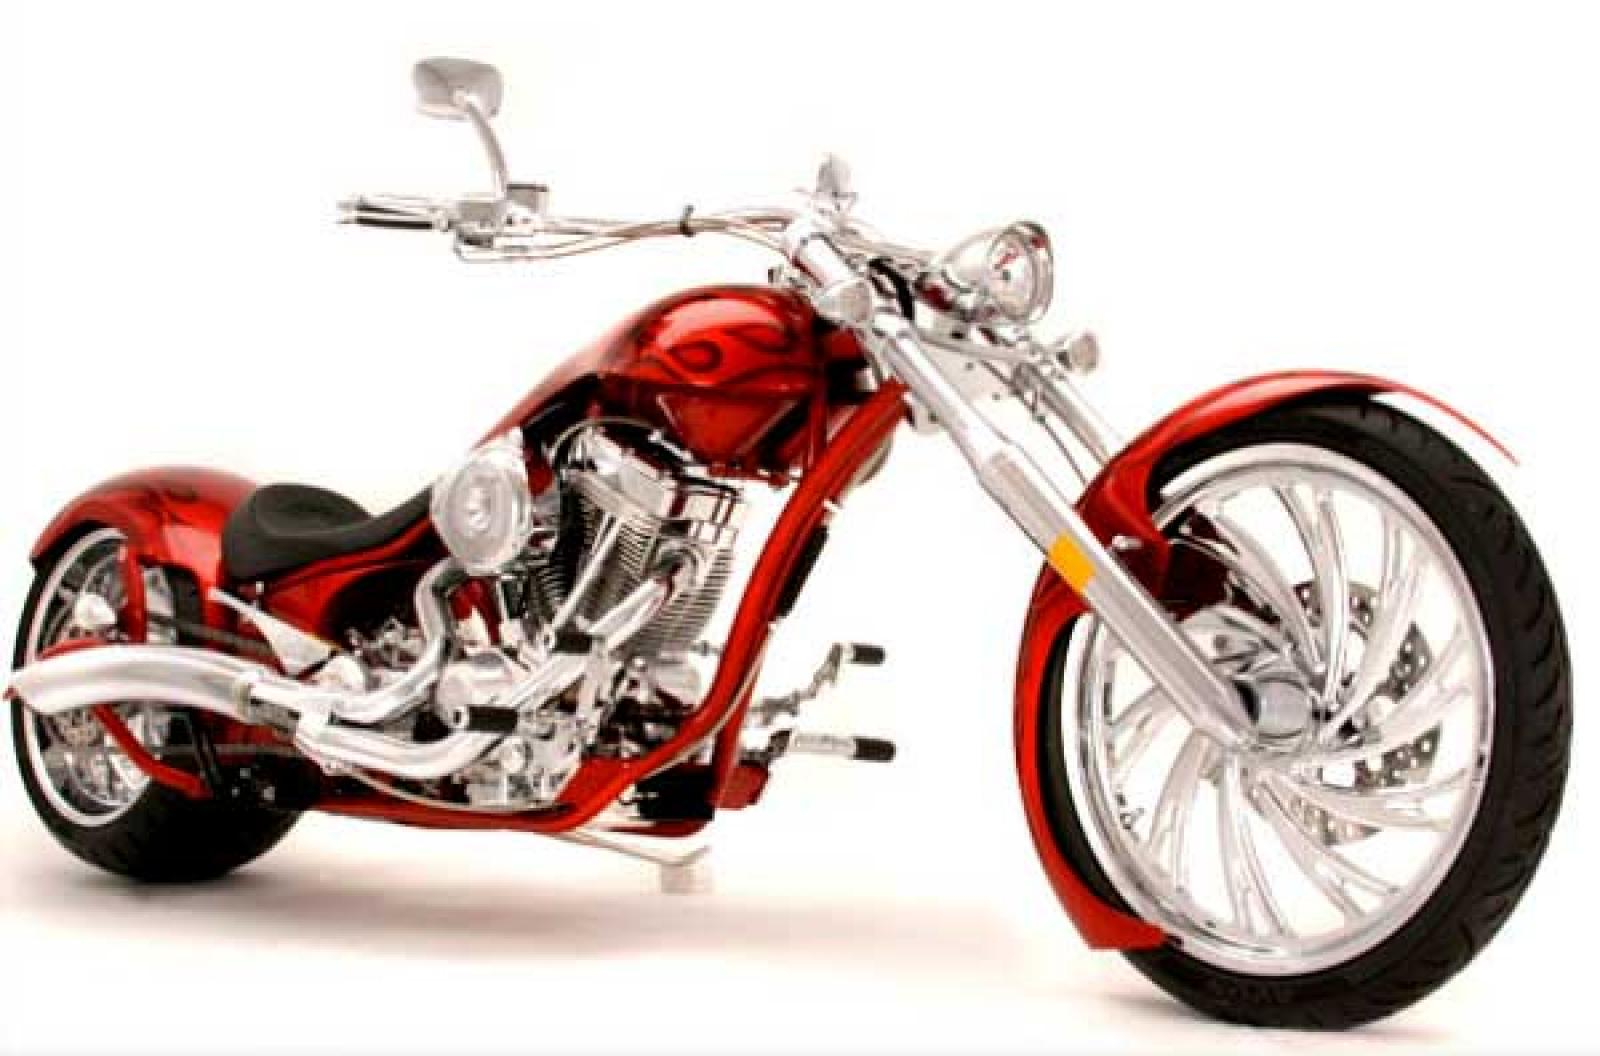 Big Bear Choppers Athena 114 X-Wedge 2009 images #92600